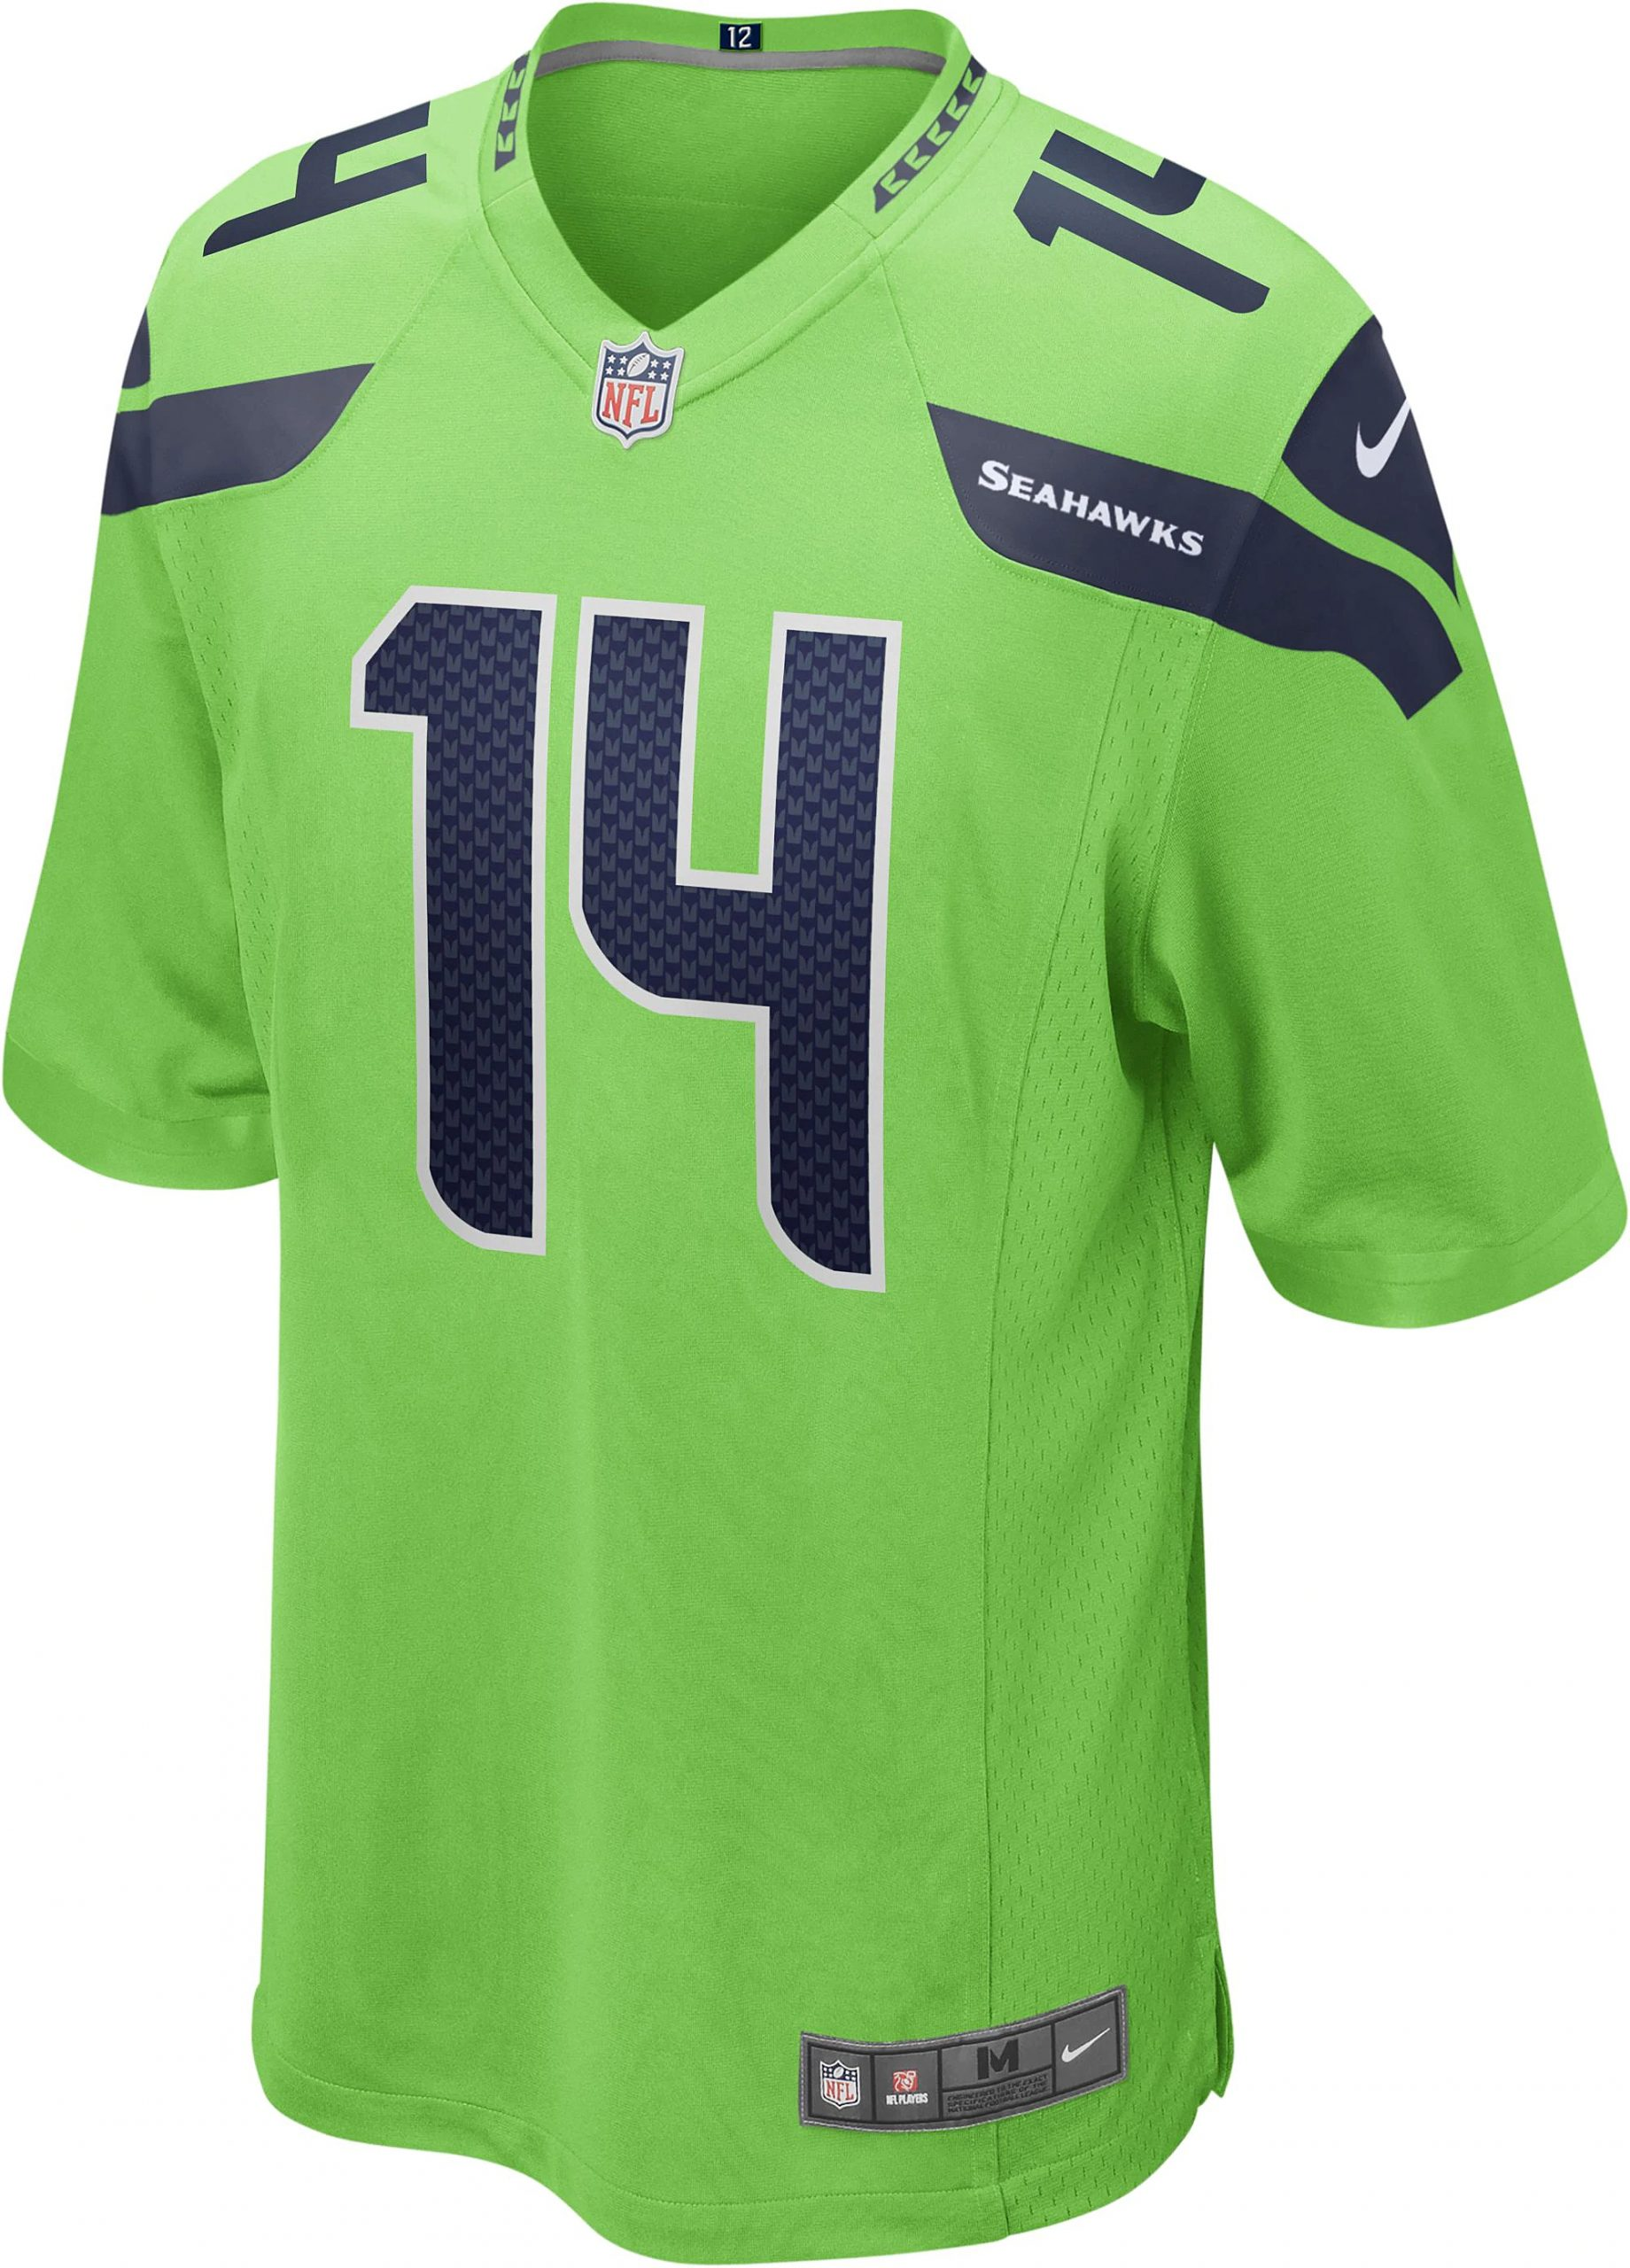 2020 Nike Dk Metcalf Seattle Seahawks 14 Alternate Game Jersey Neon Green Color Rush Pnw Sports Apparel